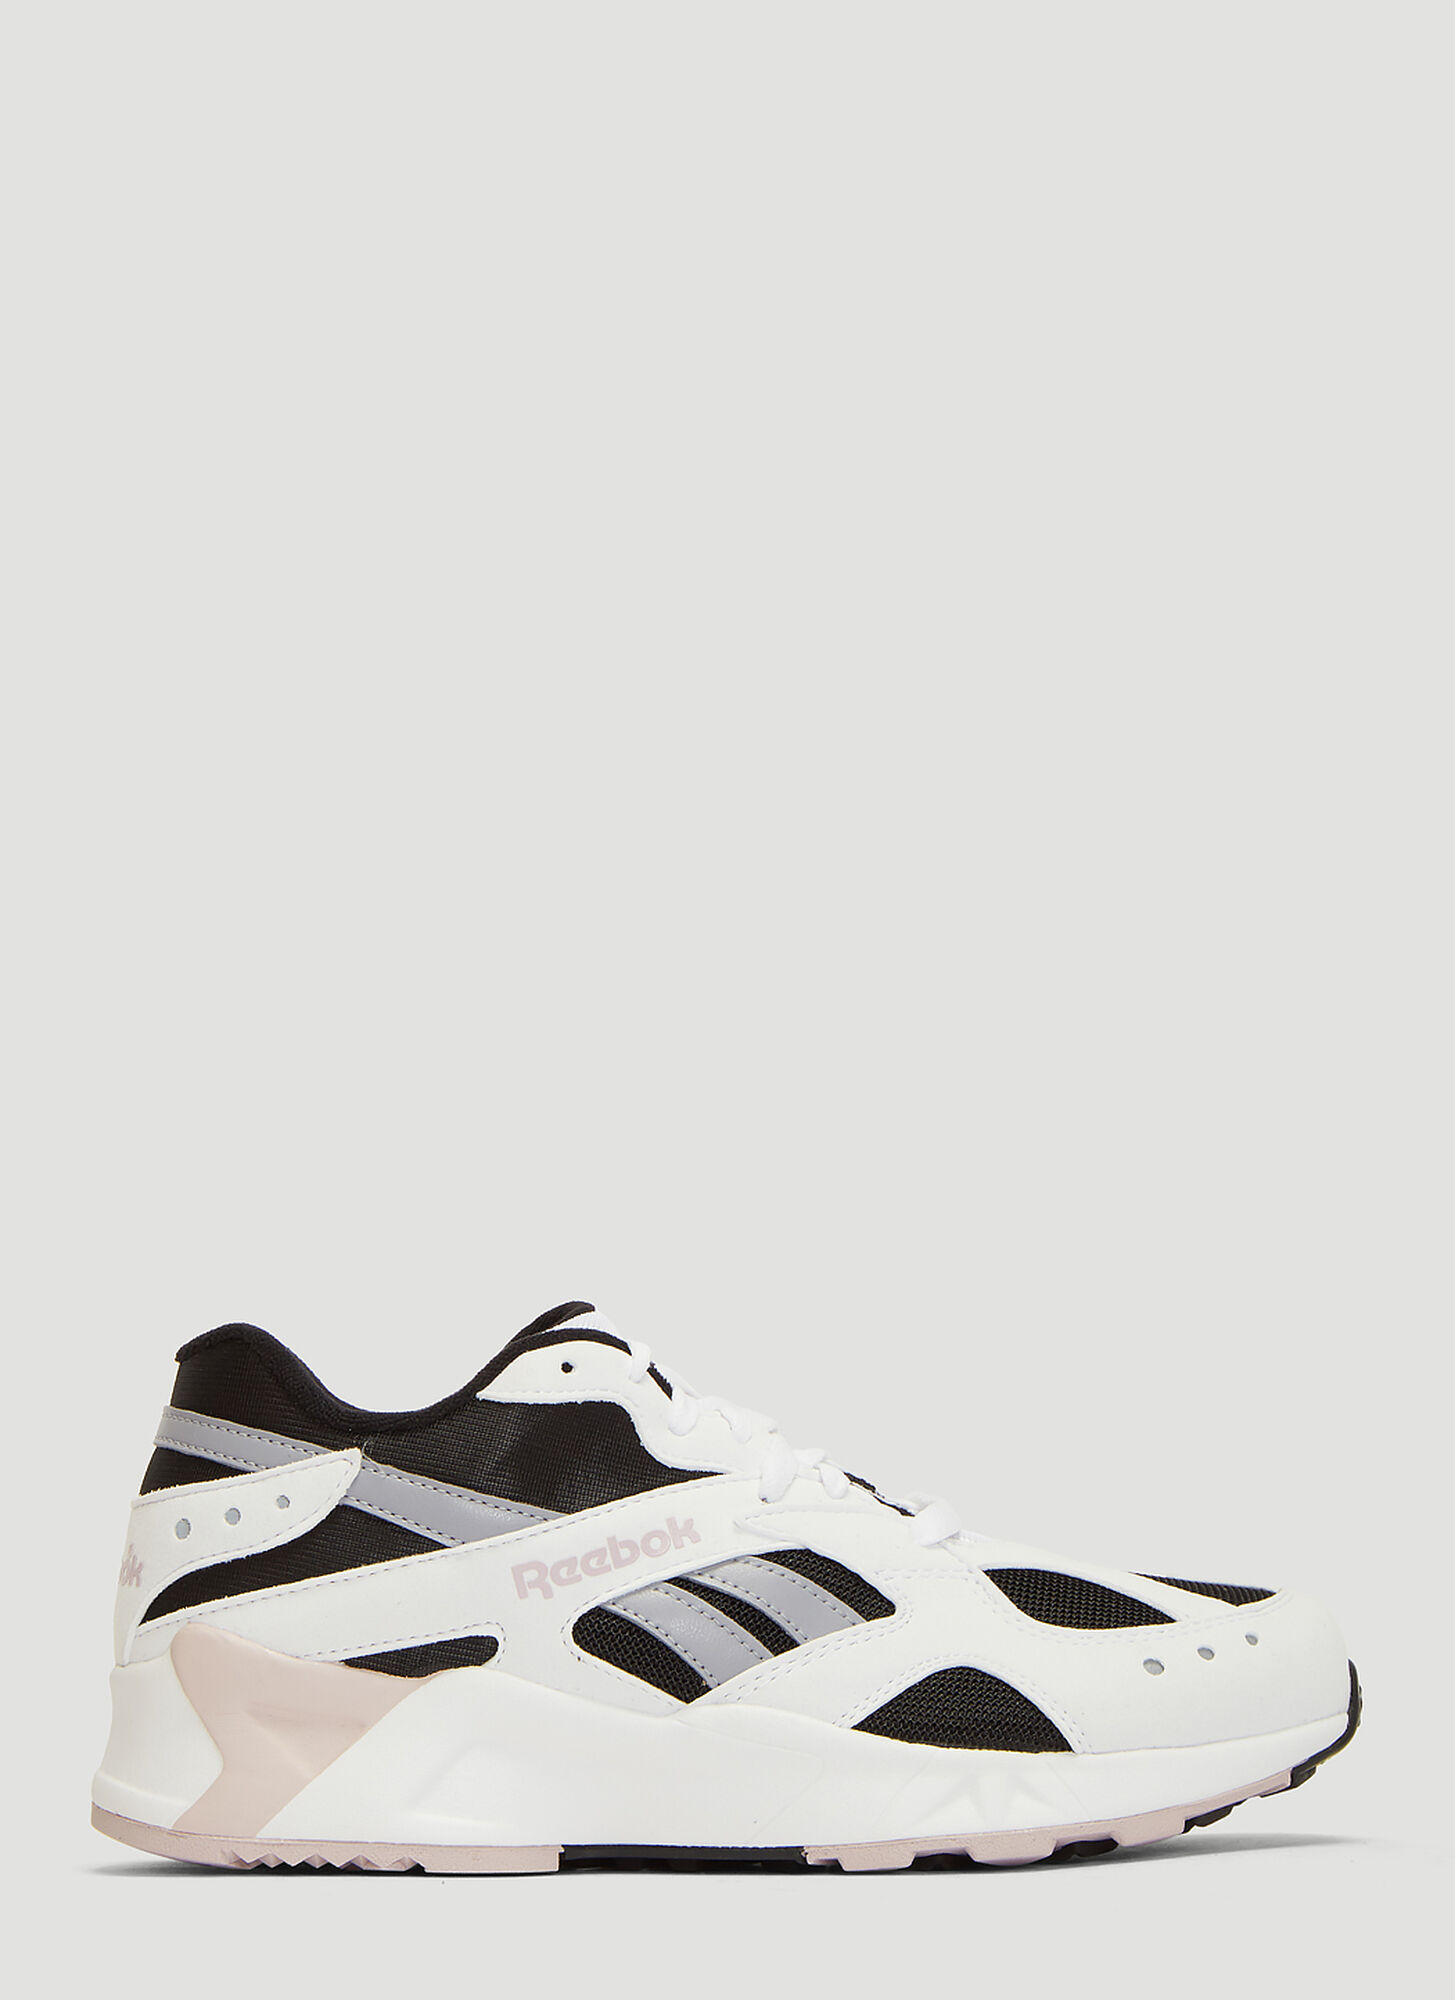 Photo of Reebok Aztrek Sneakers in White - Reebok Sneakers